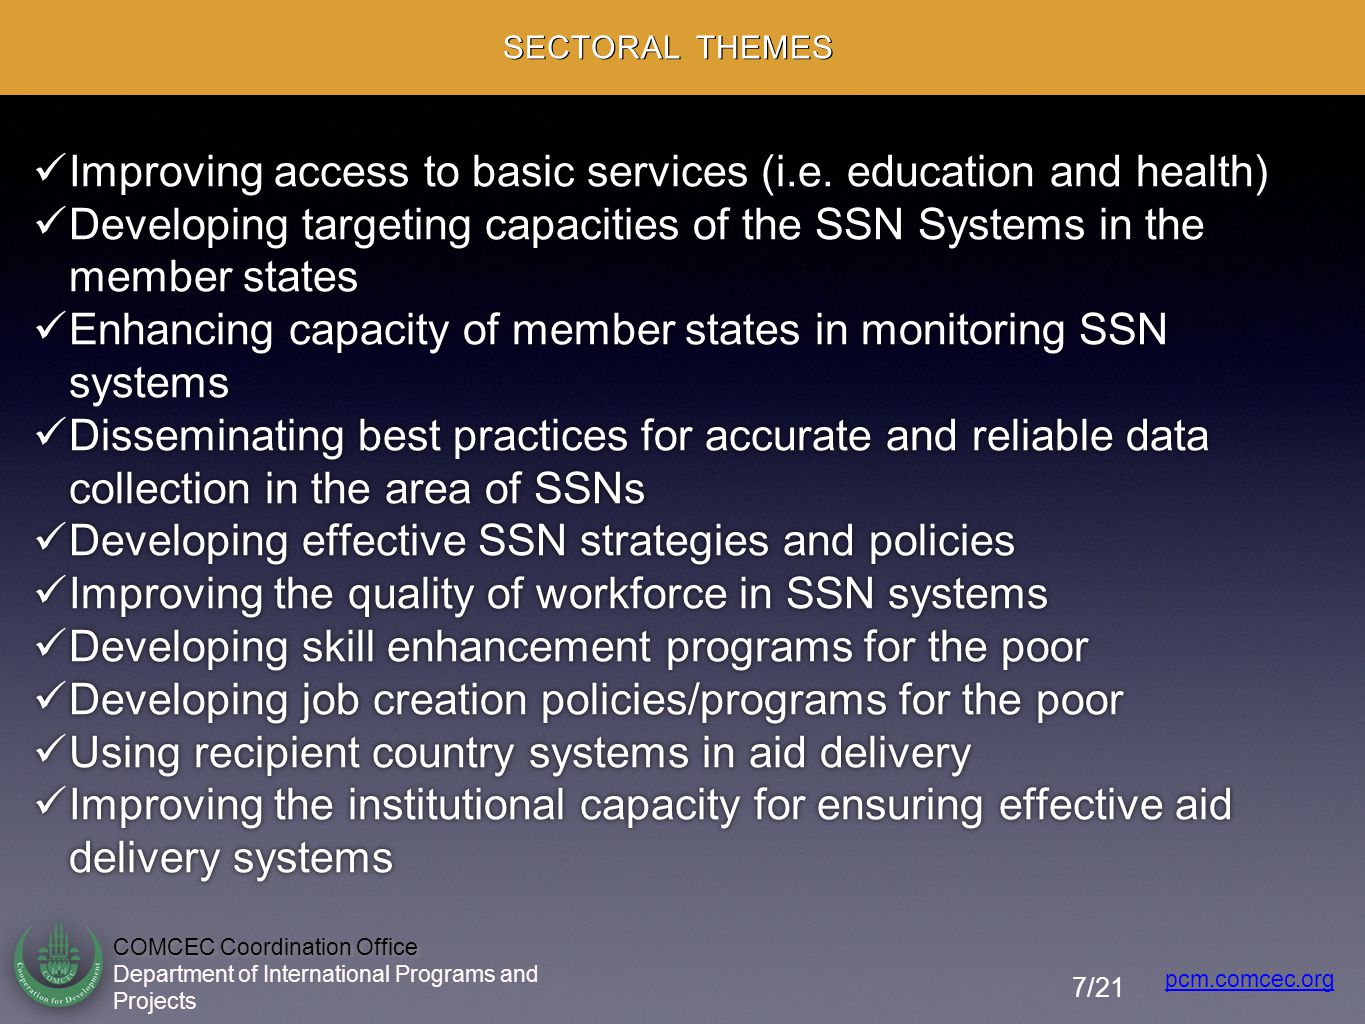 Improving access to basic services (i.e. education and health)